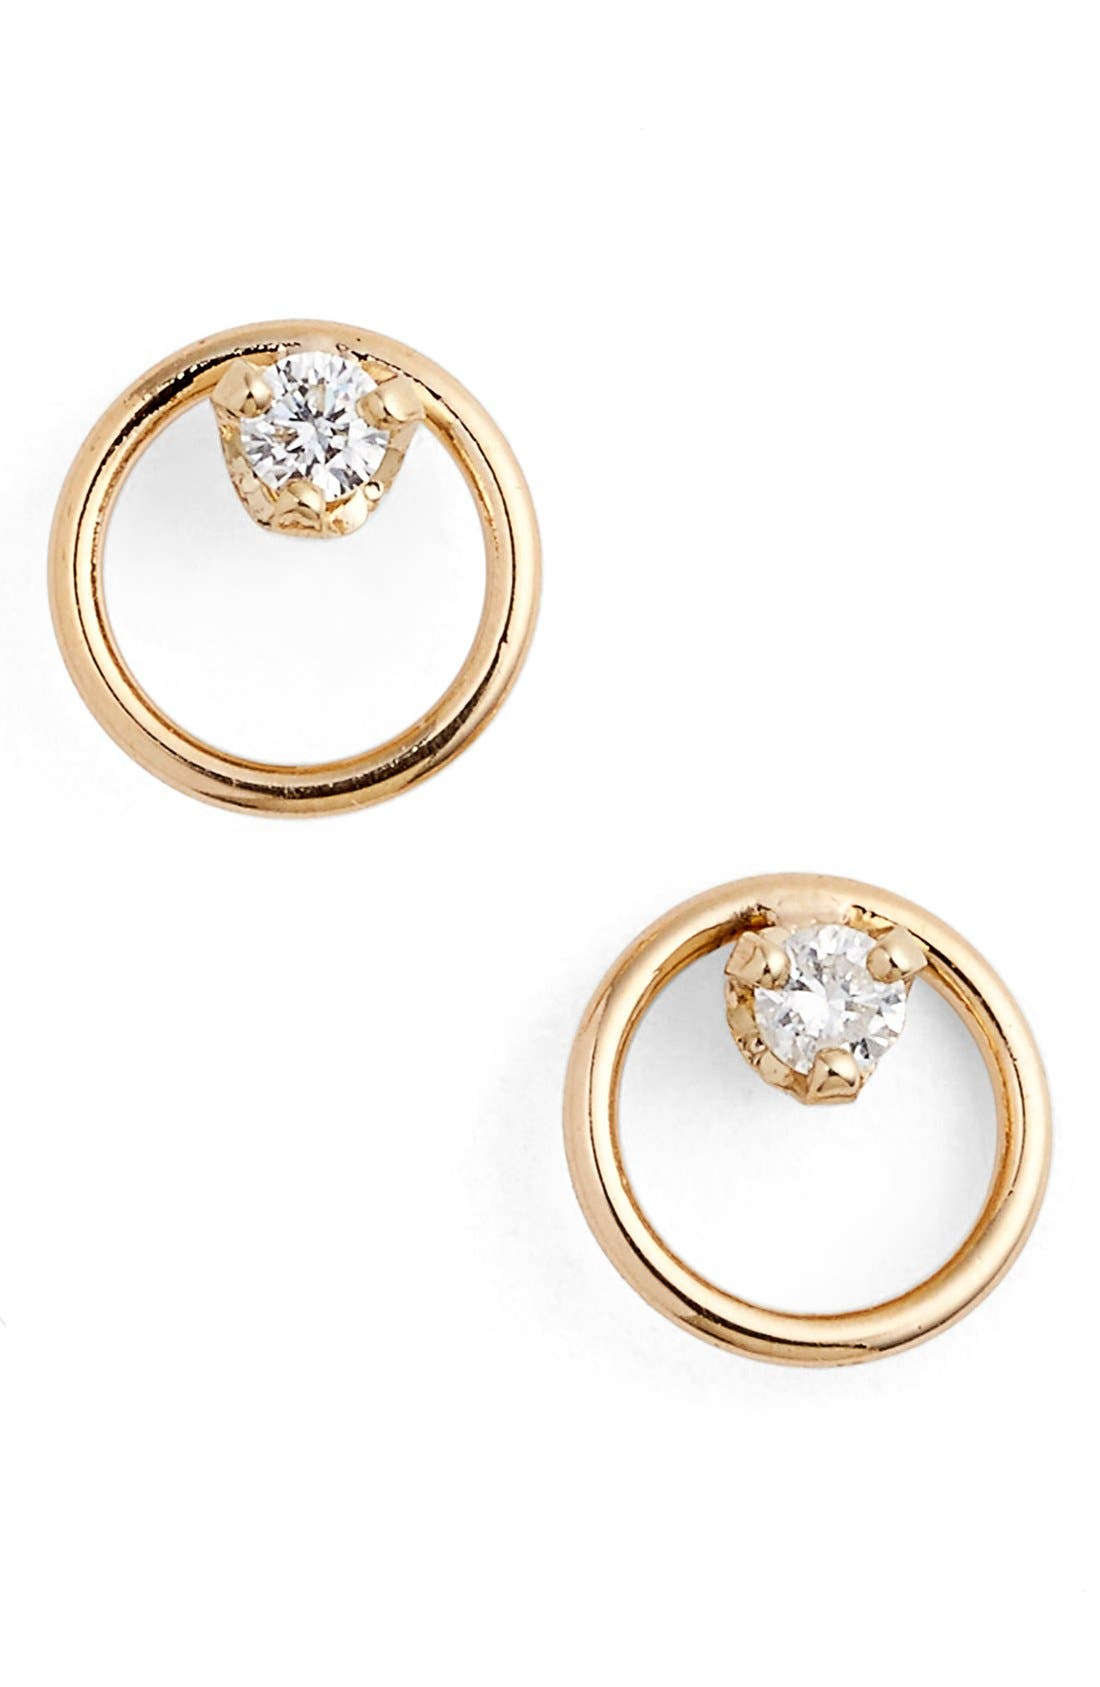 Diamond Circle Stud Earrings,                         Main,                         color, Yellow Gold